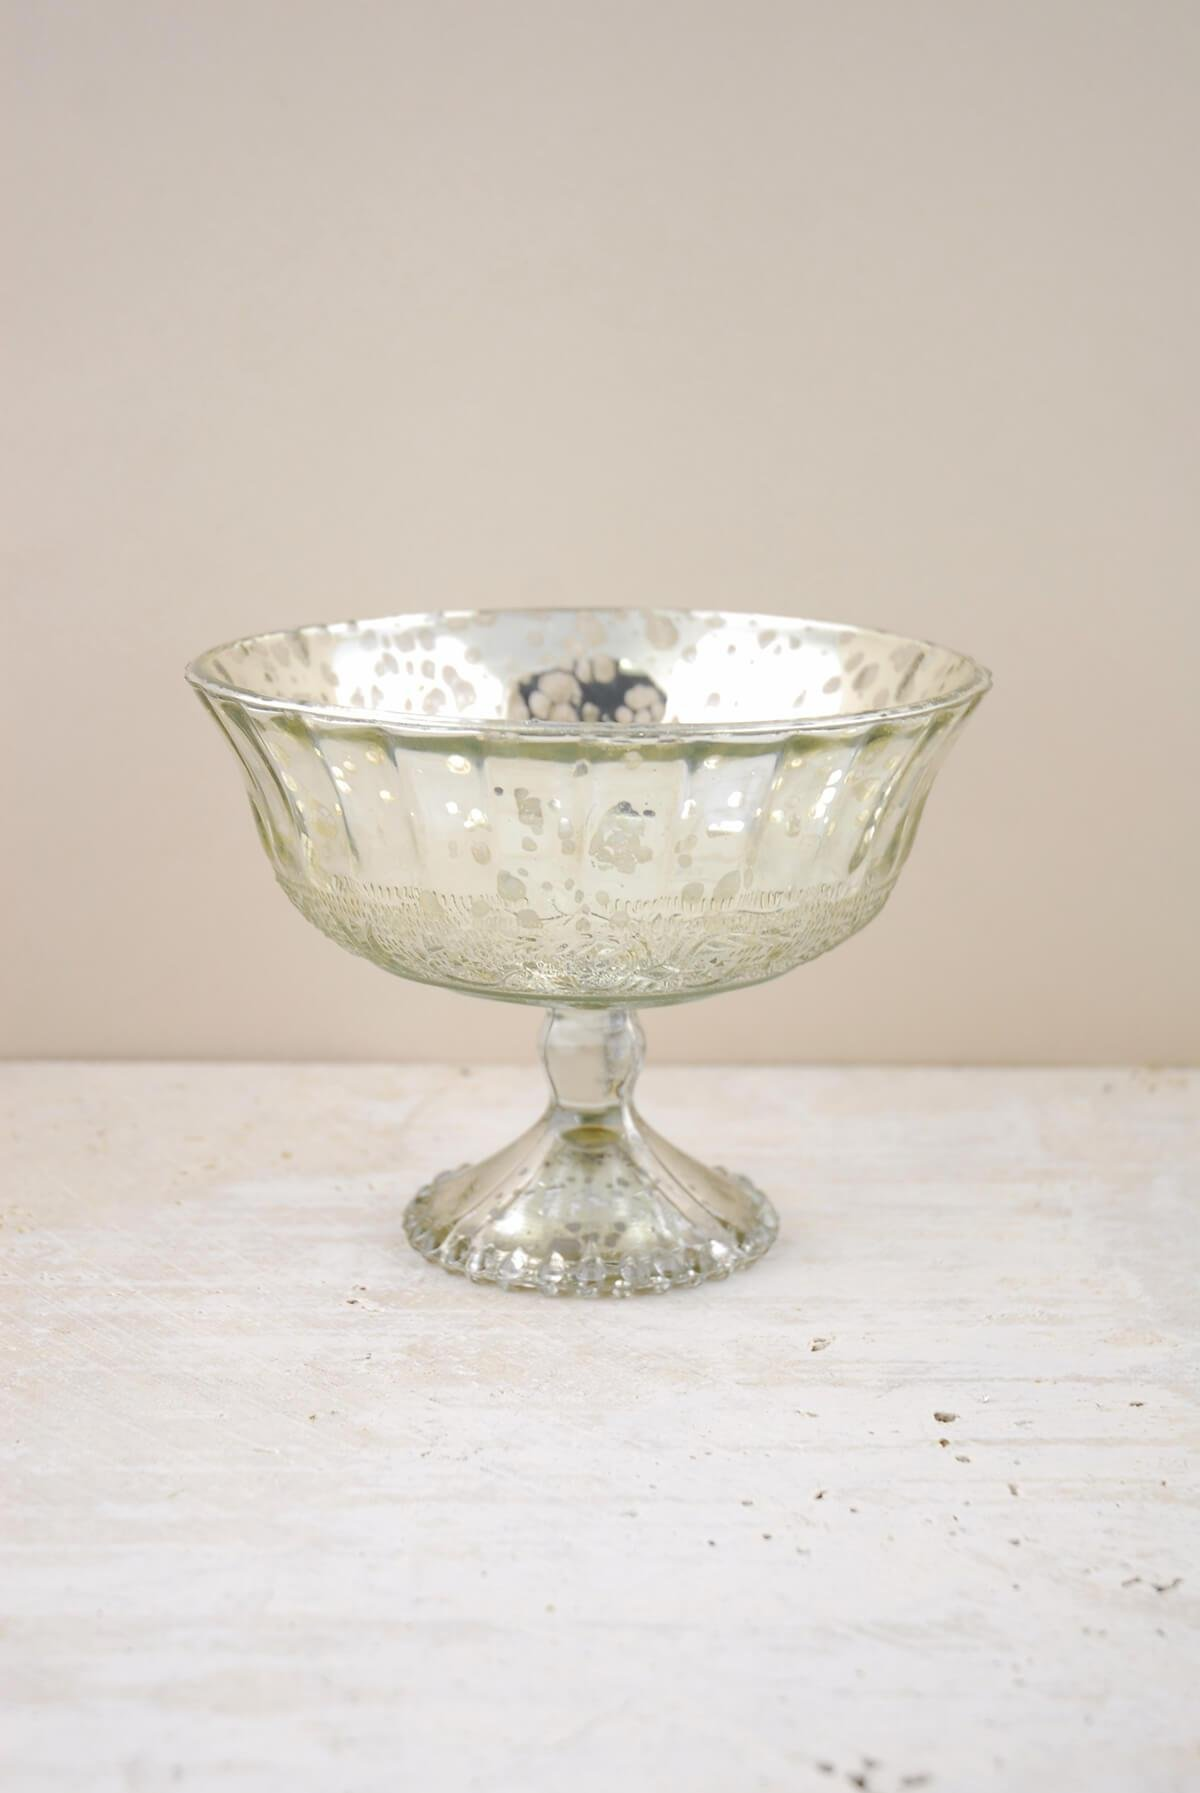 Richland Silver Mercury Glass Compote 7''x 5'' Set of 6